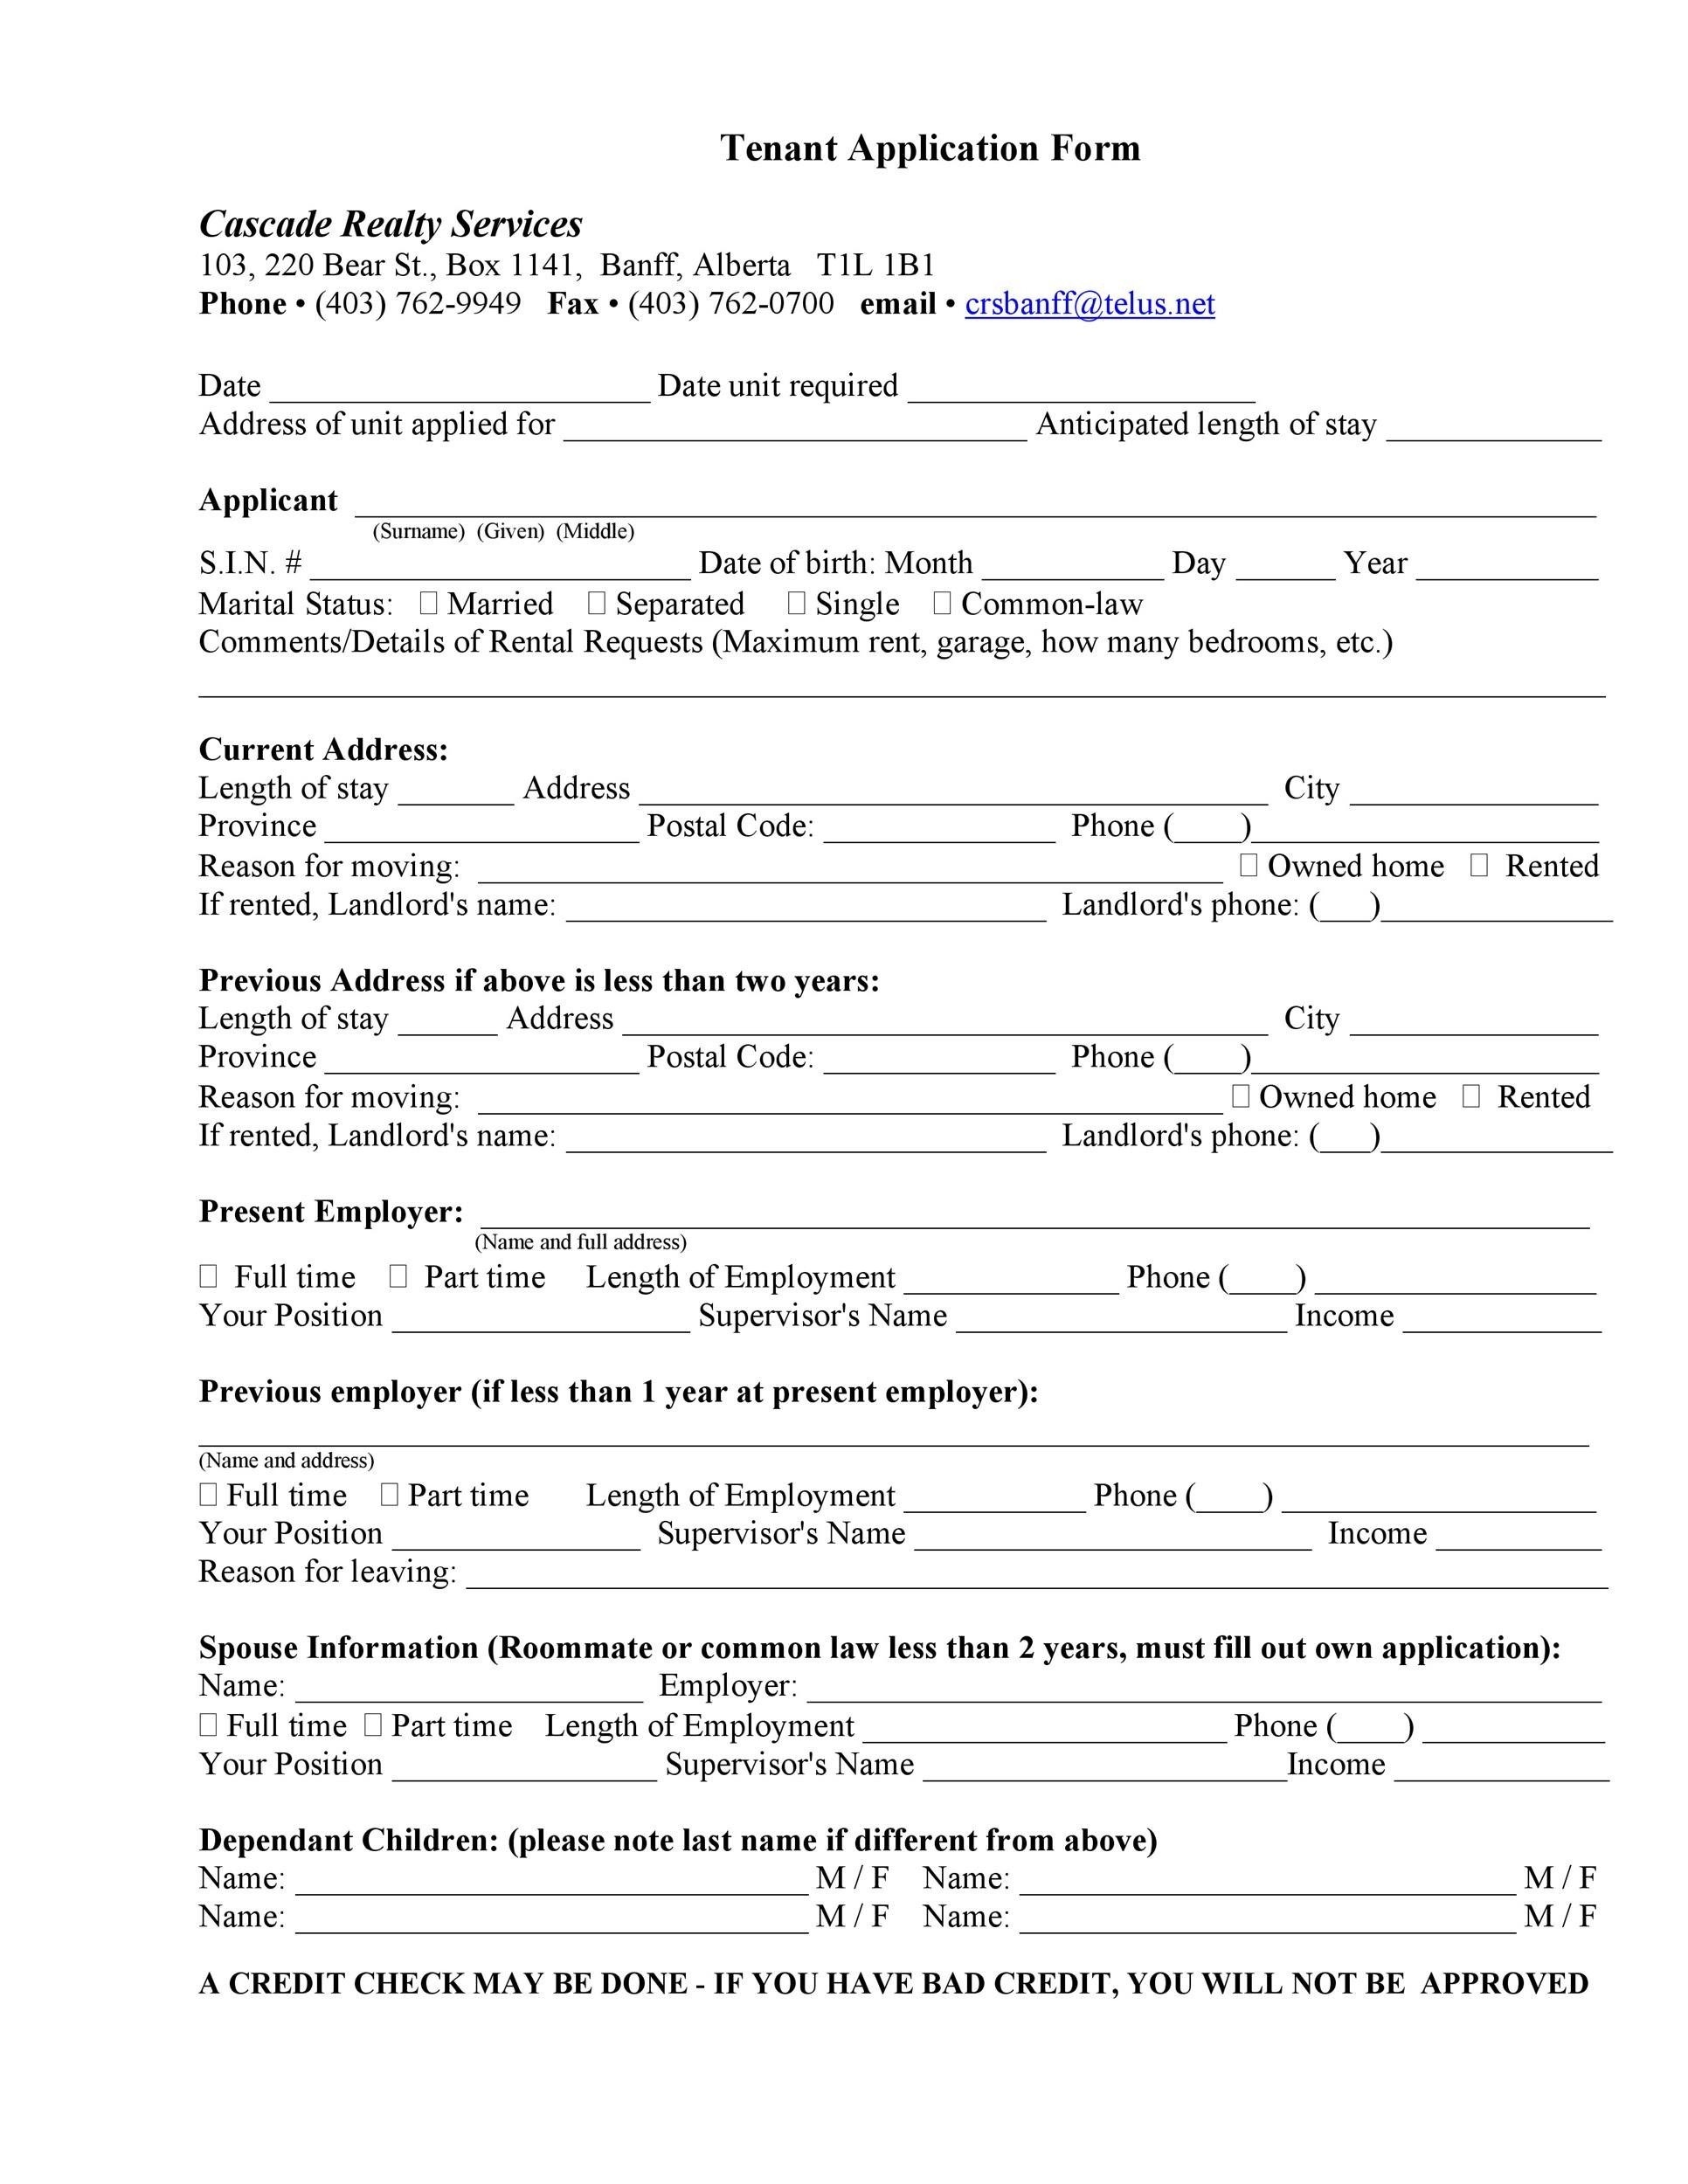 tenant application form samples - Sample Application Forms